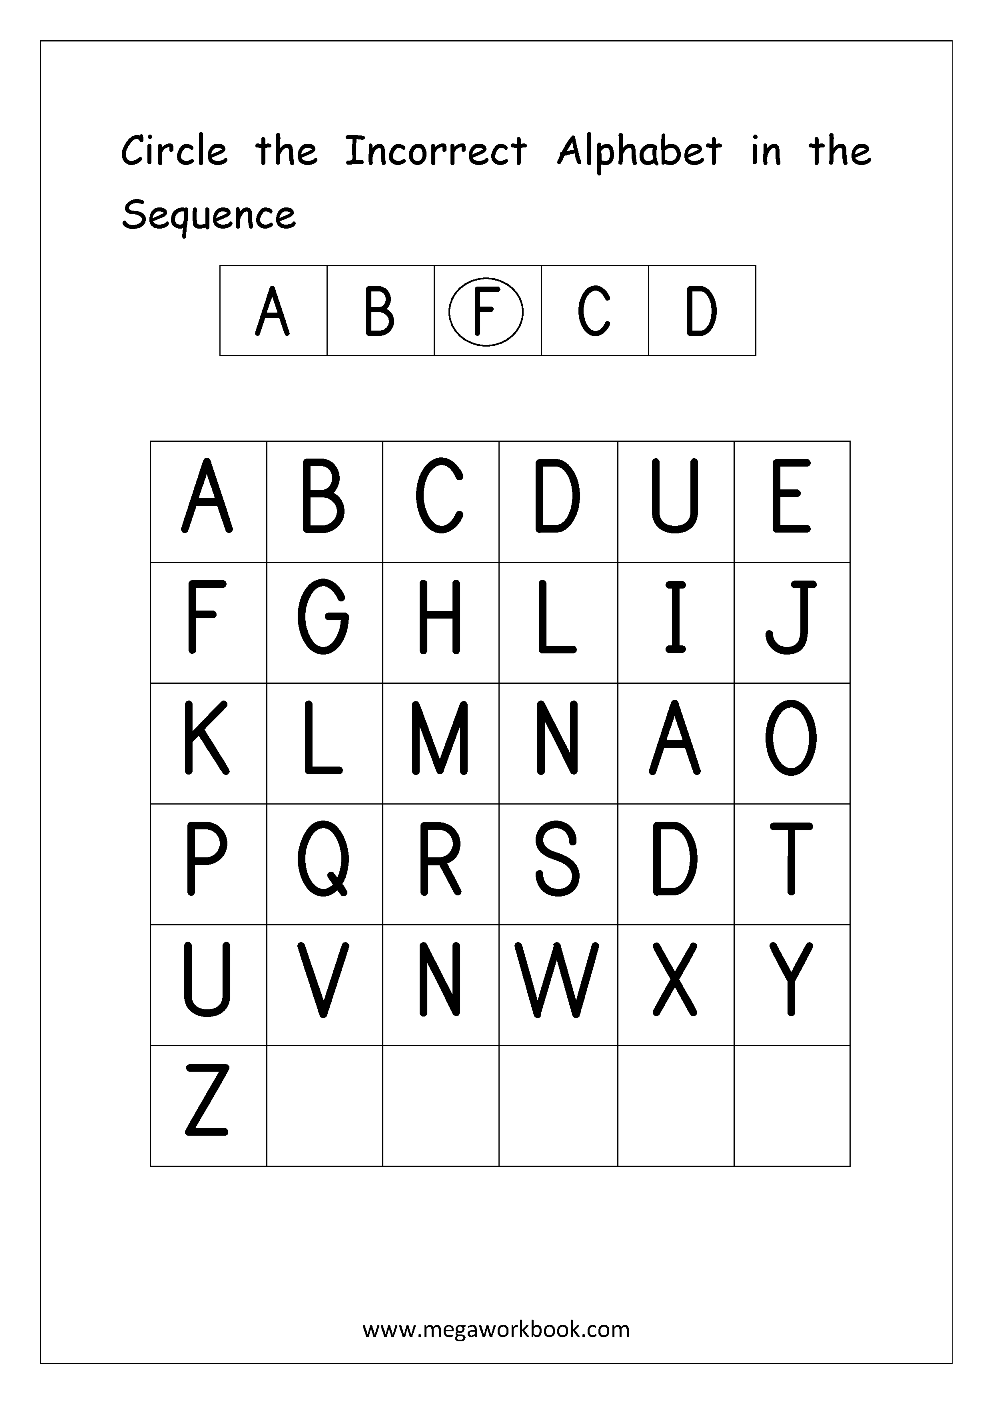 Alphabet Ordering Worksheet Circle Incorrect In The Sequence Alphabet Worksheets Free English Worksheets Alphabet Worksheets Free [ 1403 x 992 Pixel ]